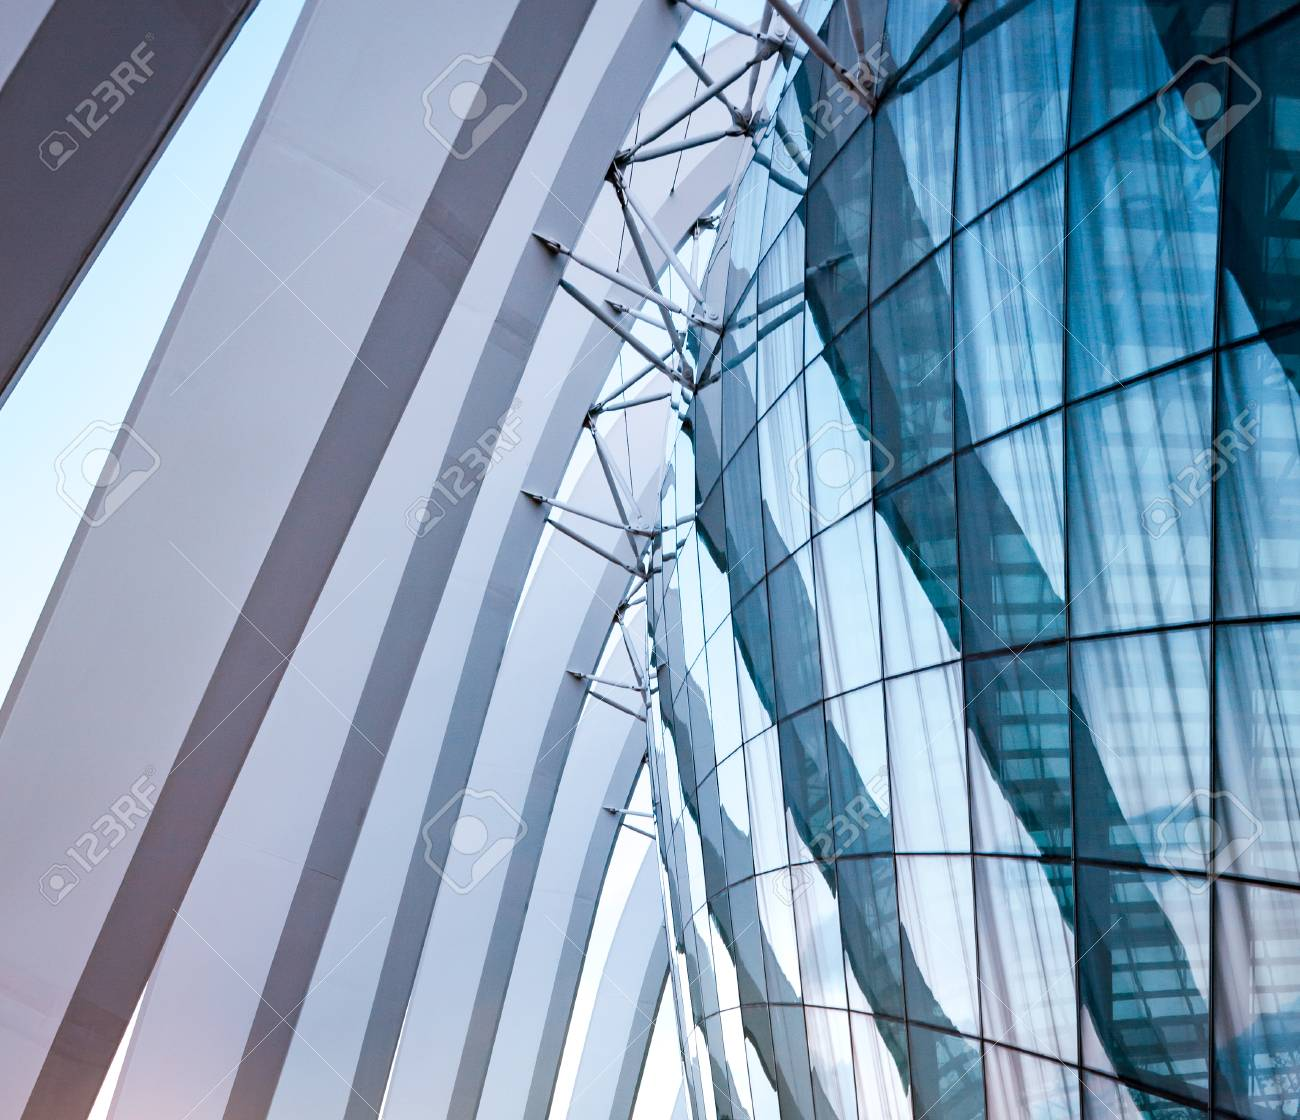 Glass And Steel Framing Design Of Modern Architecture Stock Photo ...